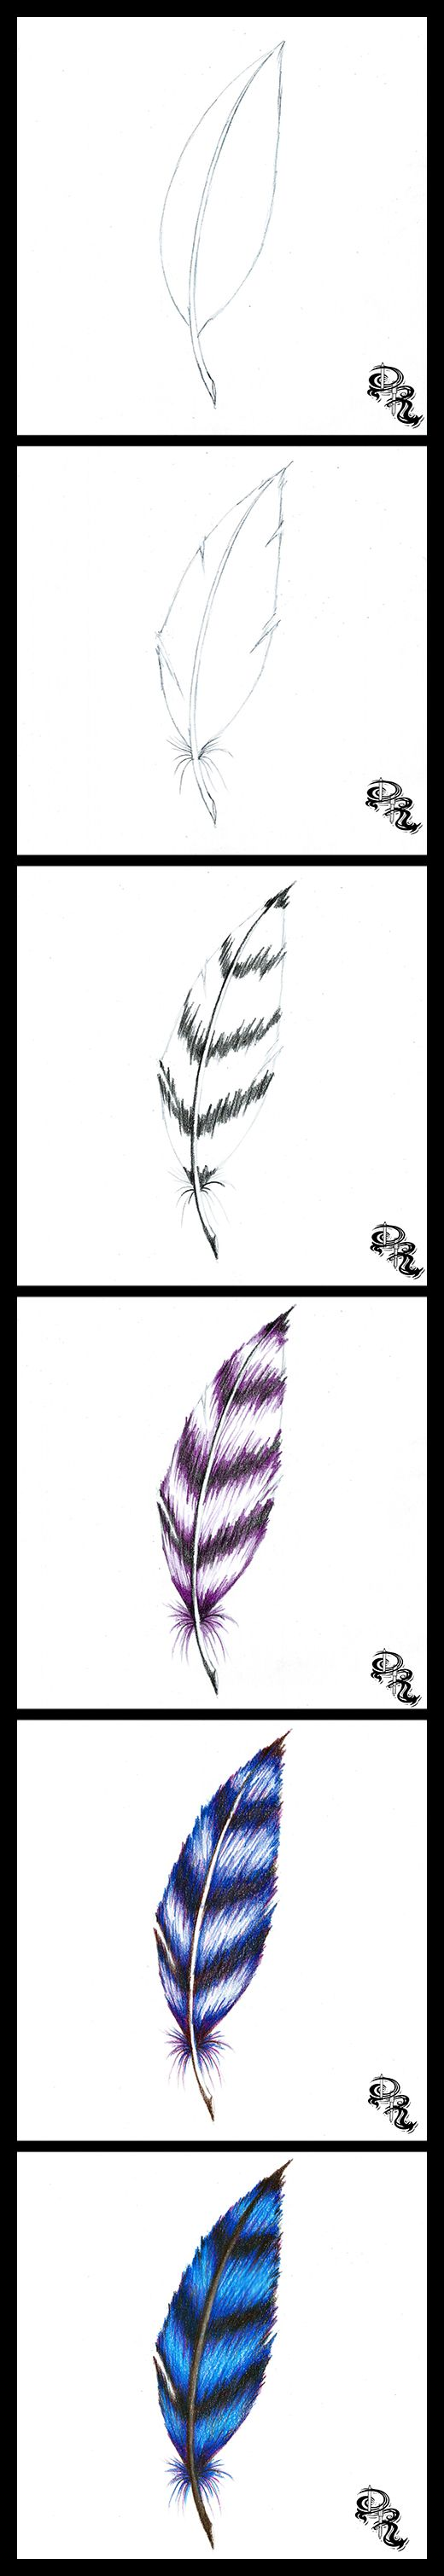 How To Draw A Feather With Colored Pencils